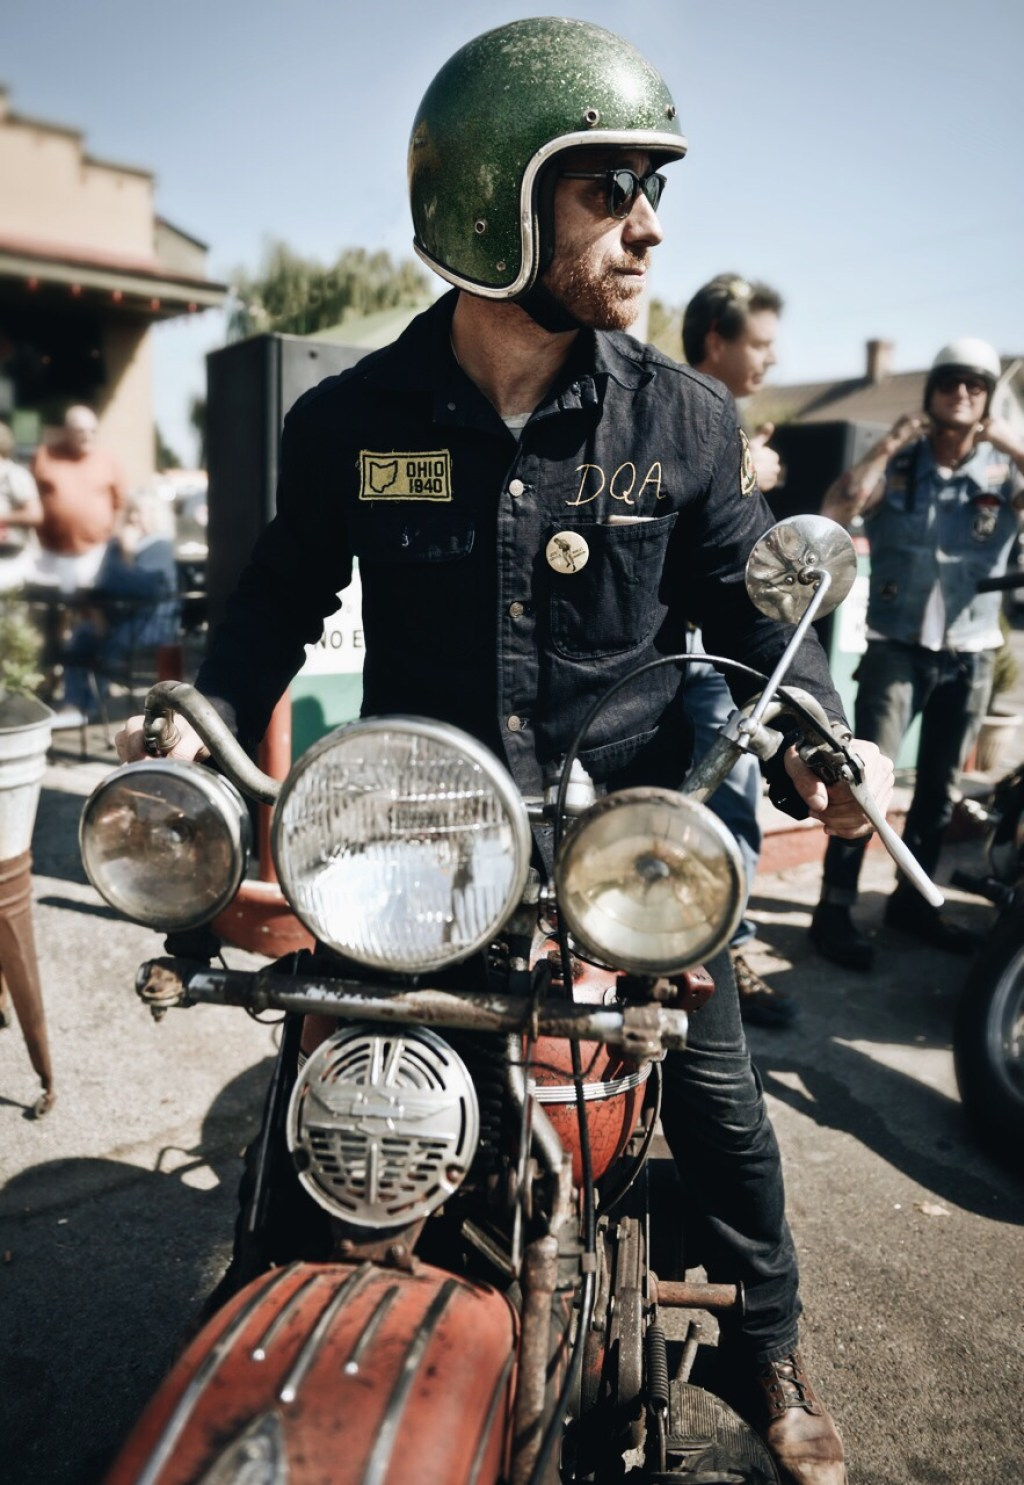 dan auerbach_lucky riders_ Yve Assad,Mike Wolfe American Picker, Two Lanes blog, motorcycle photography,